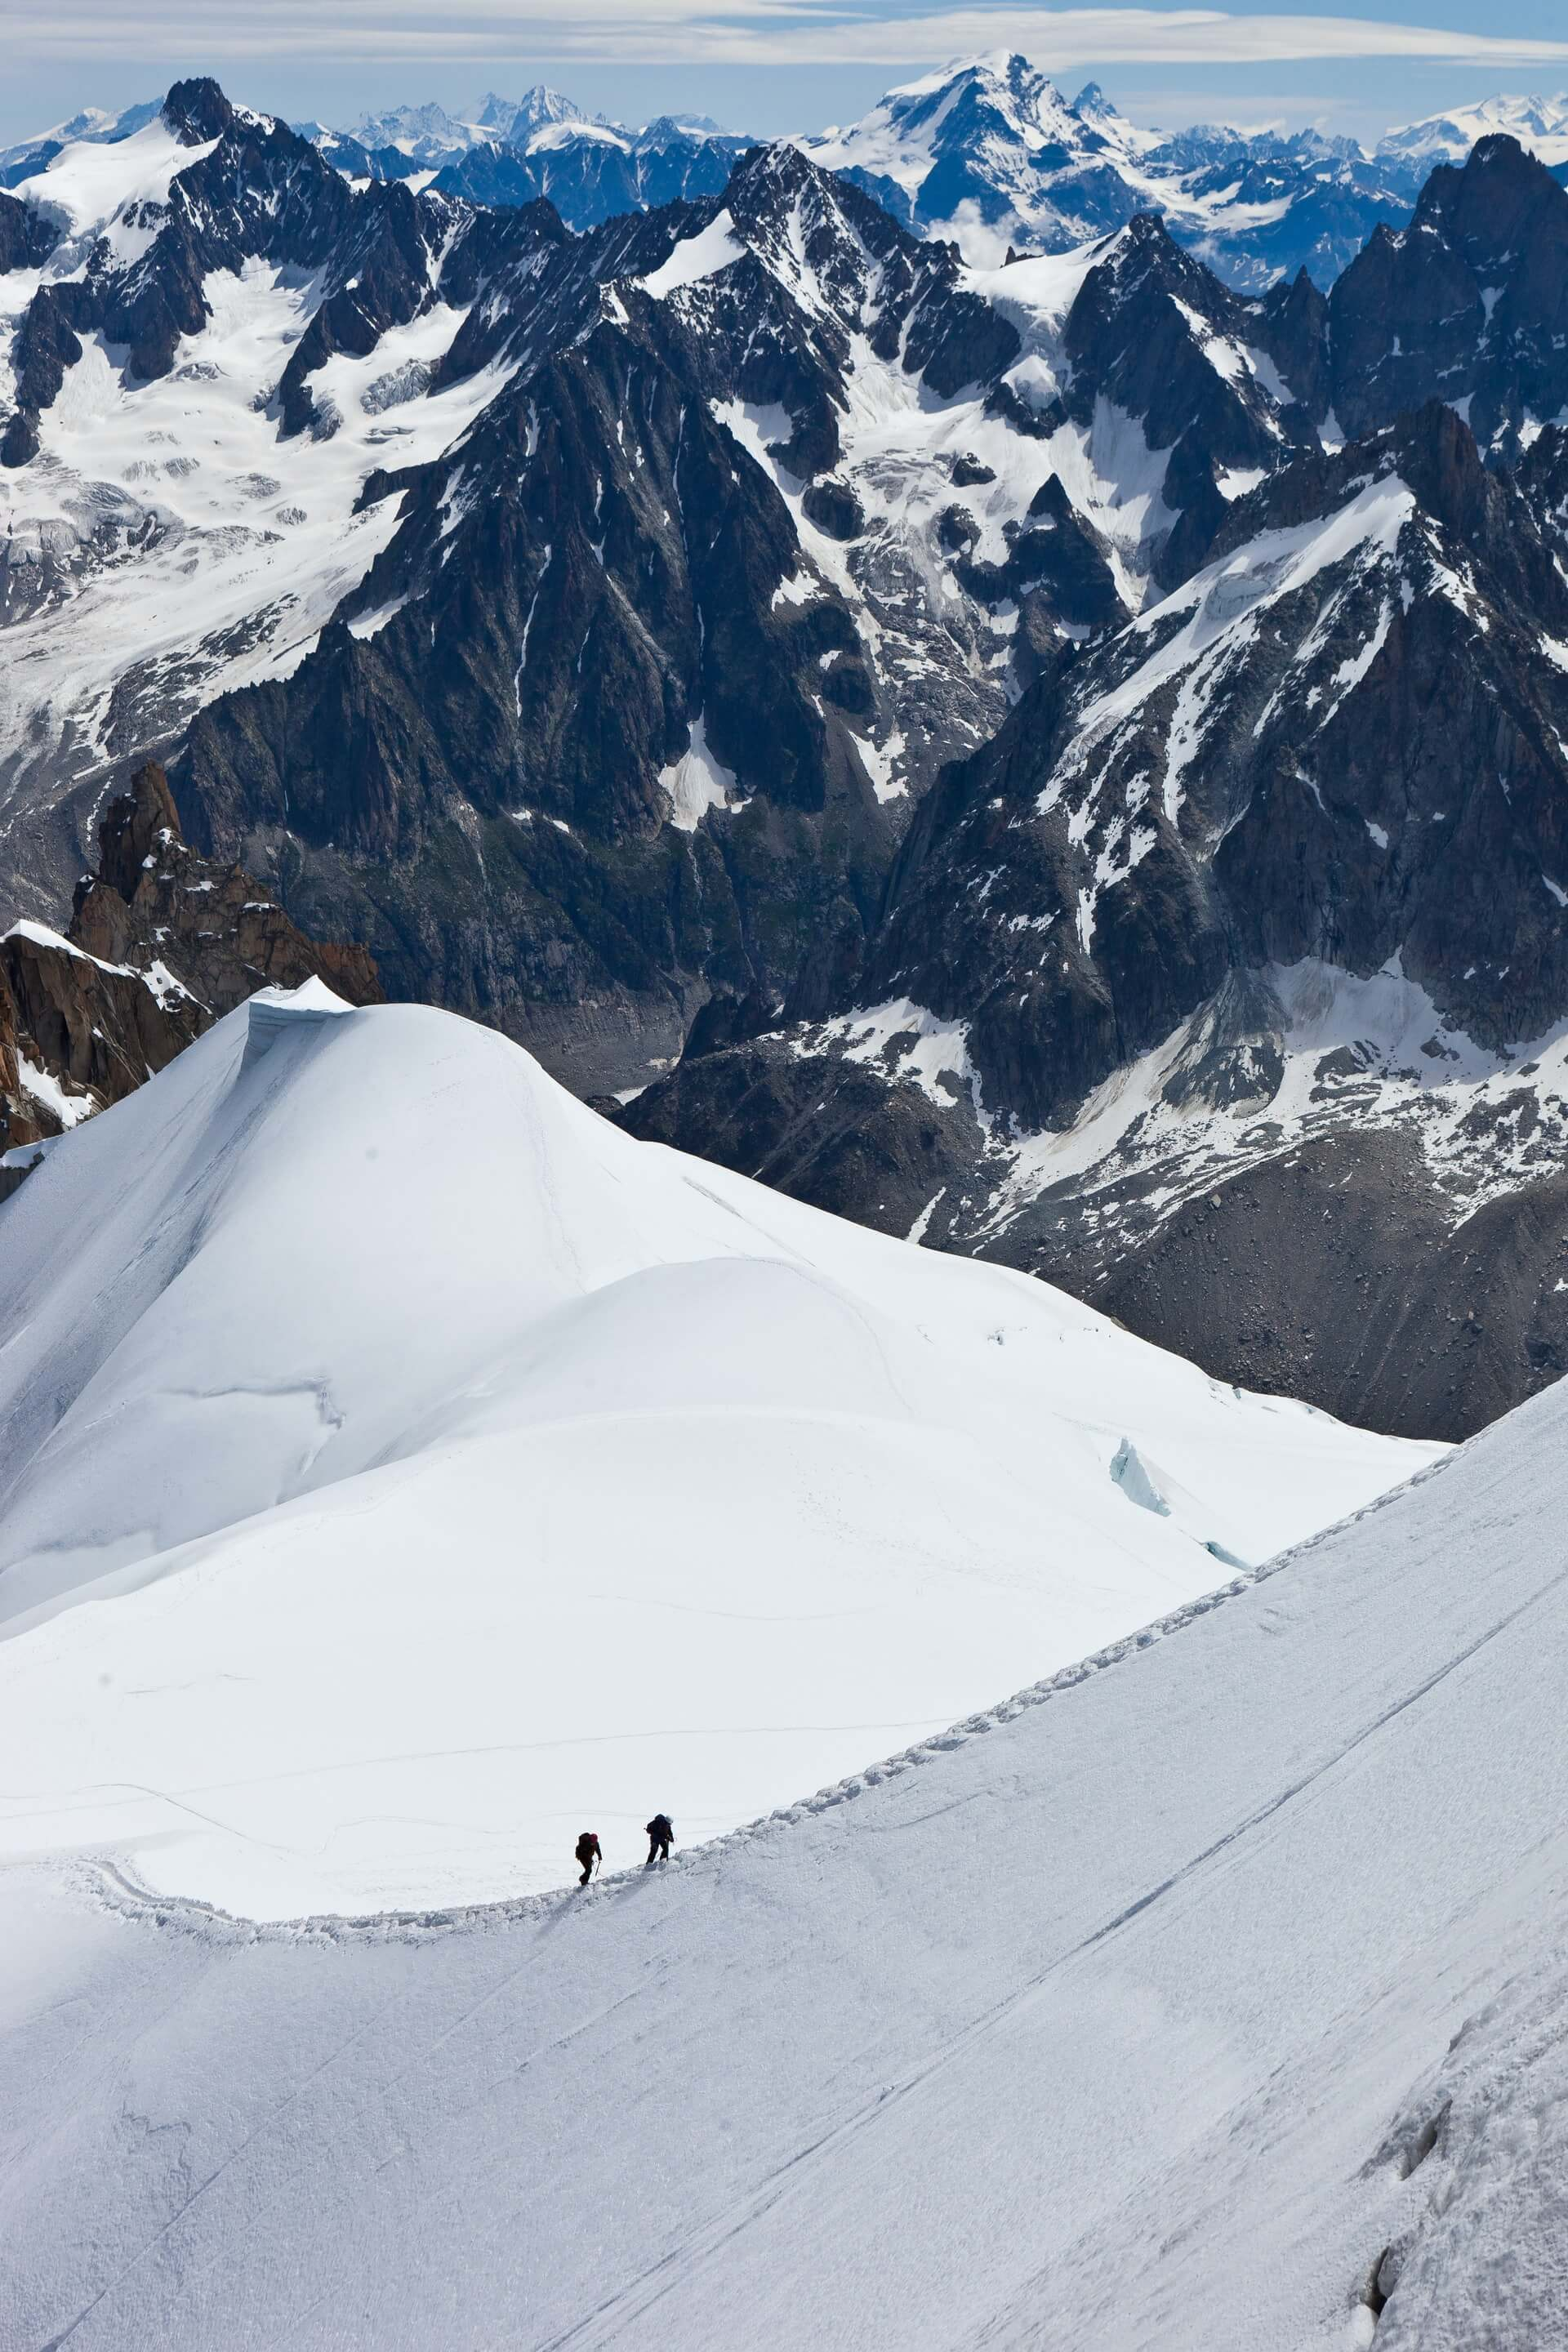 persistence-means-climbers-snowy-mountain